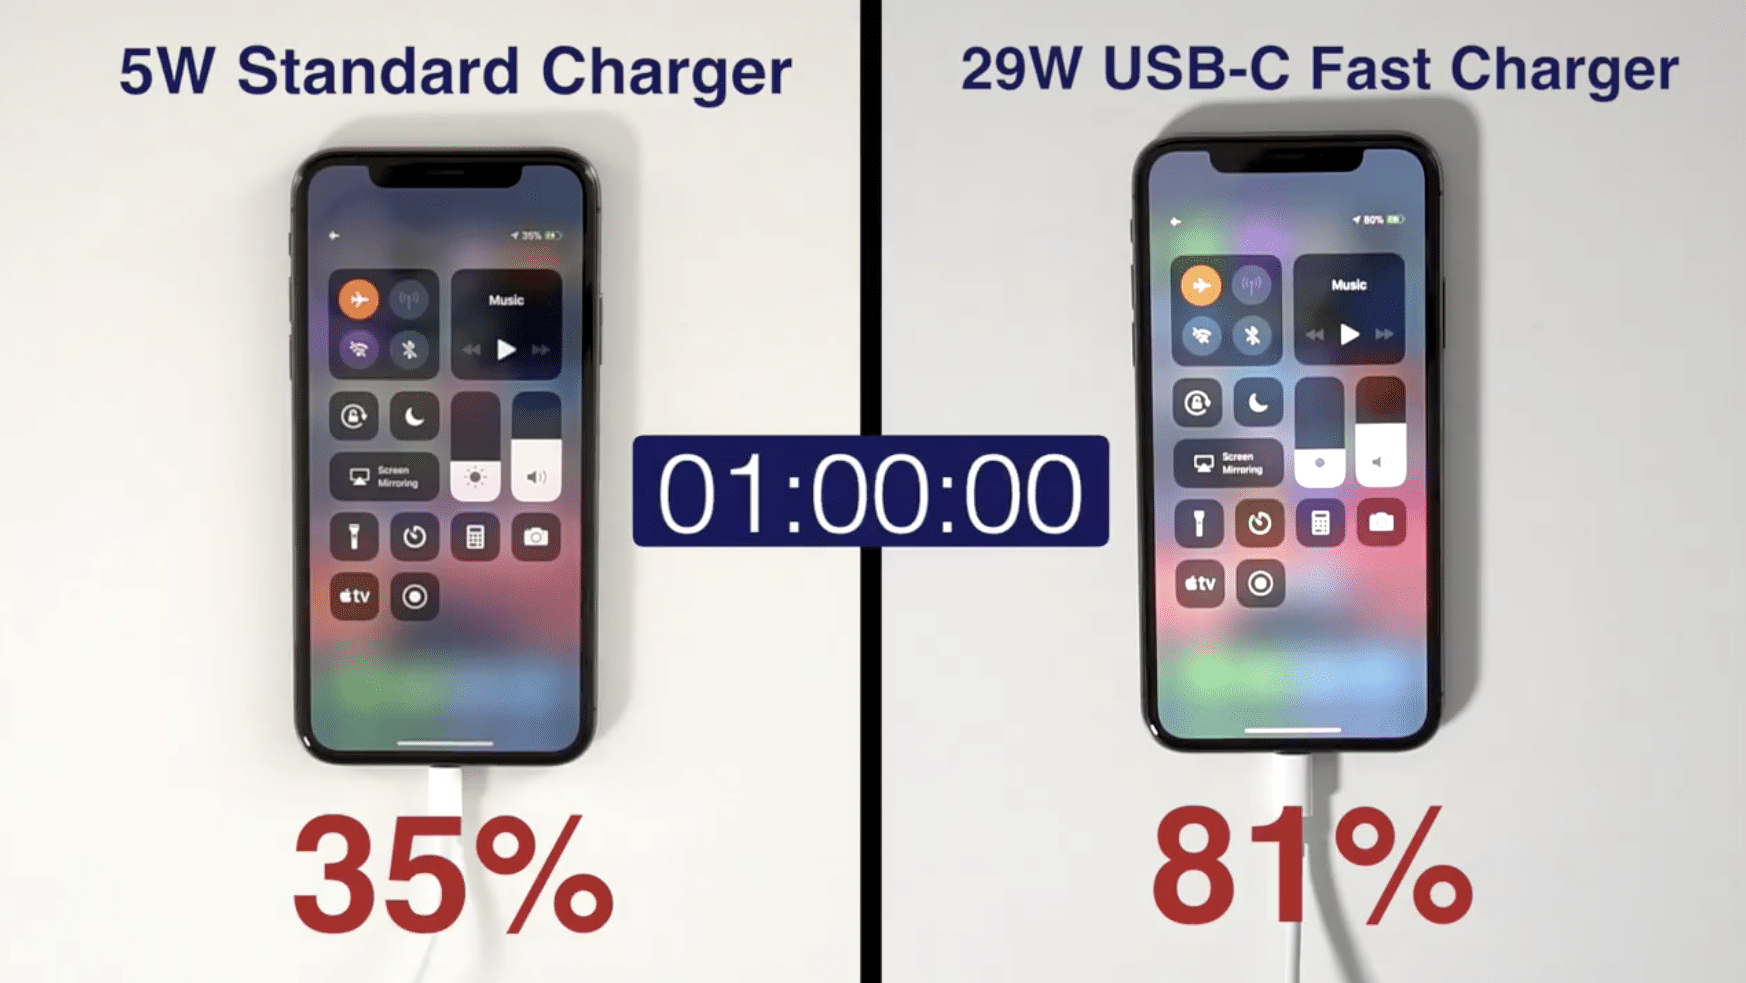 fast charging iphone x 80 percent in 1 hr-3